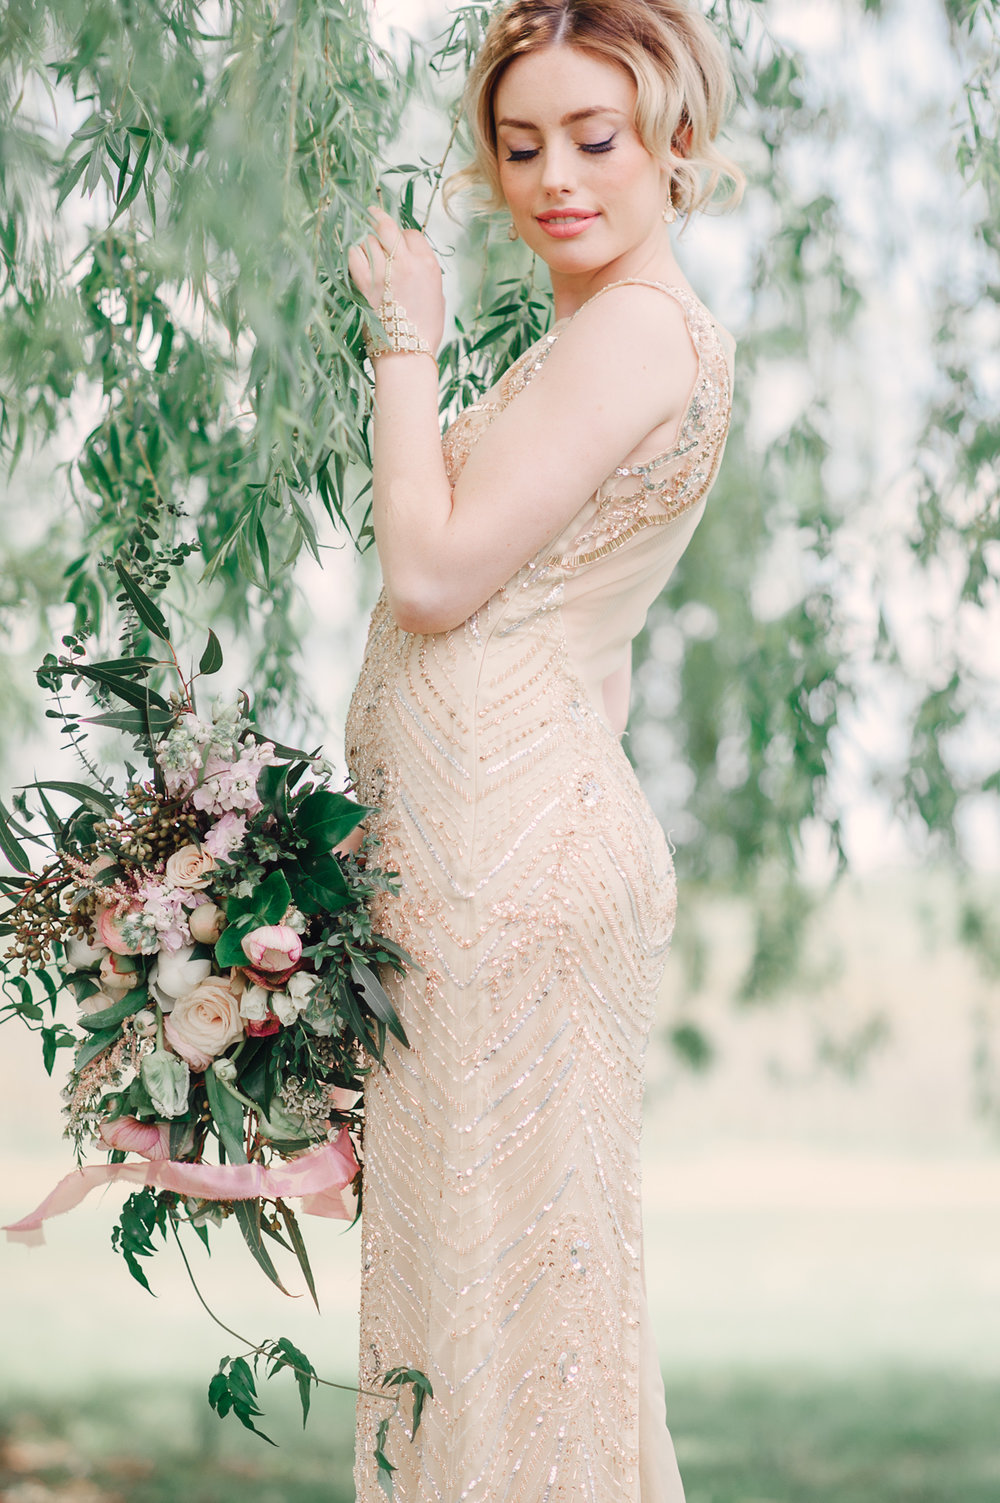 virginiawedding_bridalphotos_charlottesvillewedding_youseephotography_TrumpWinery (60).jpg